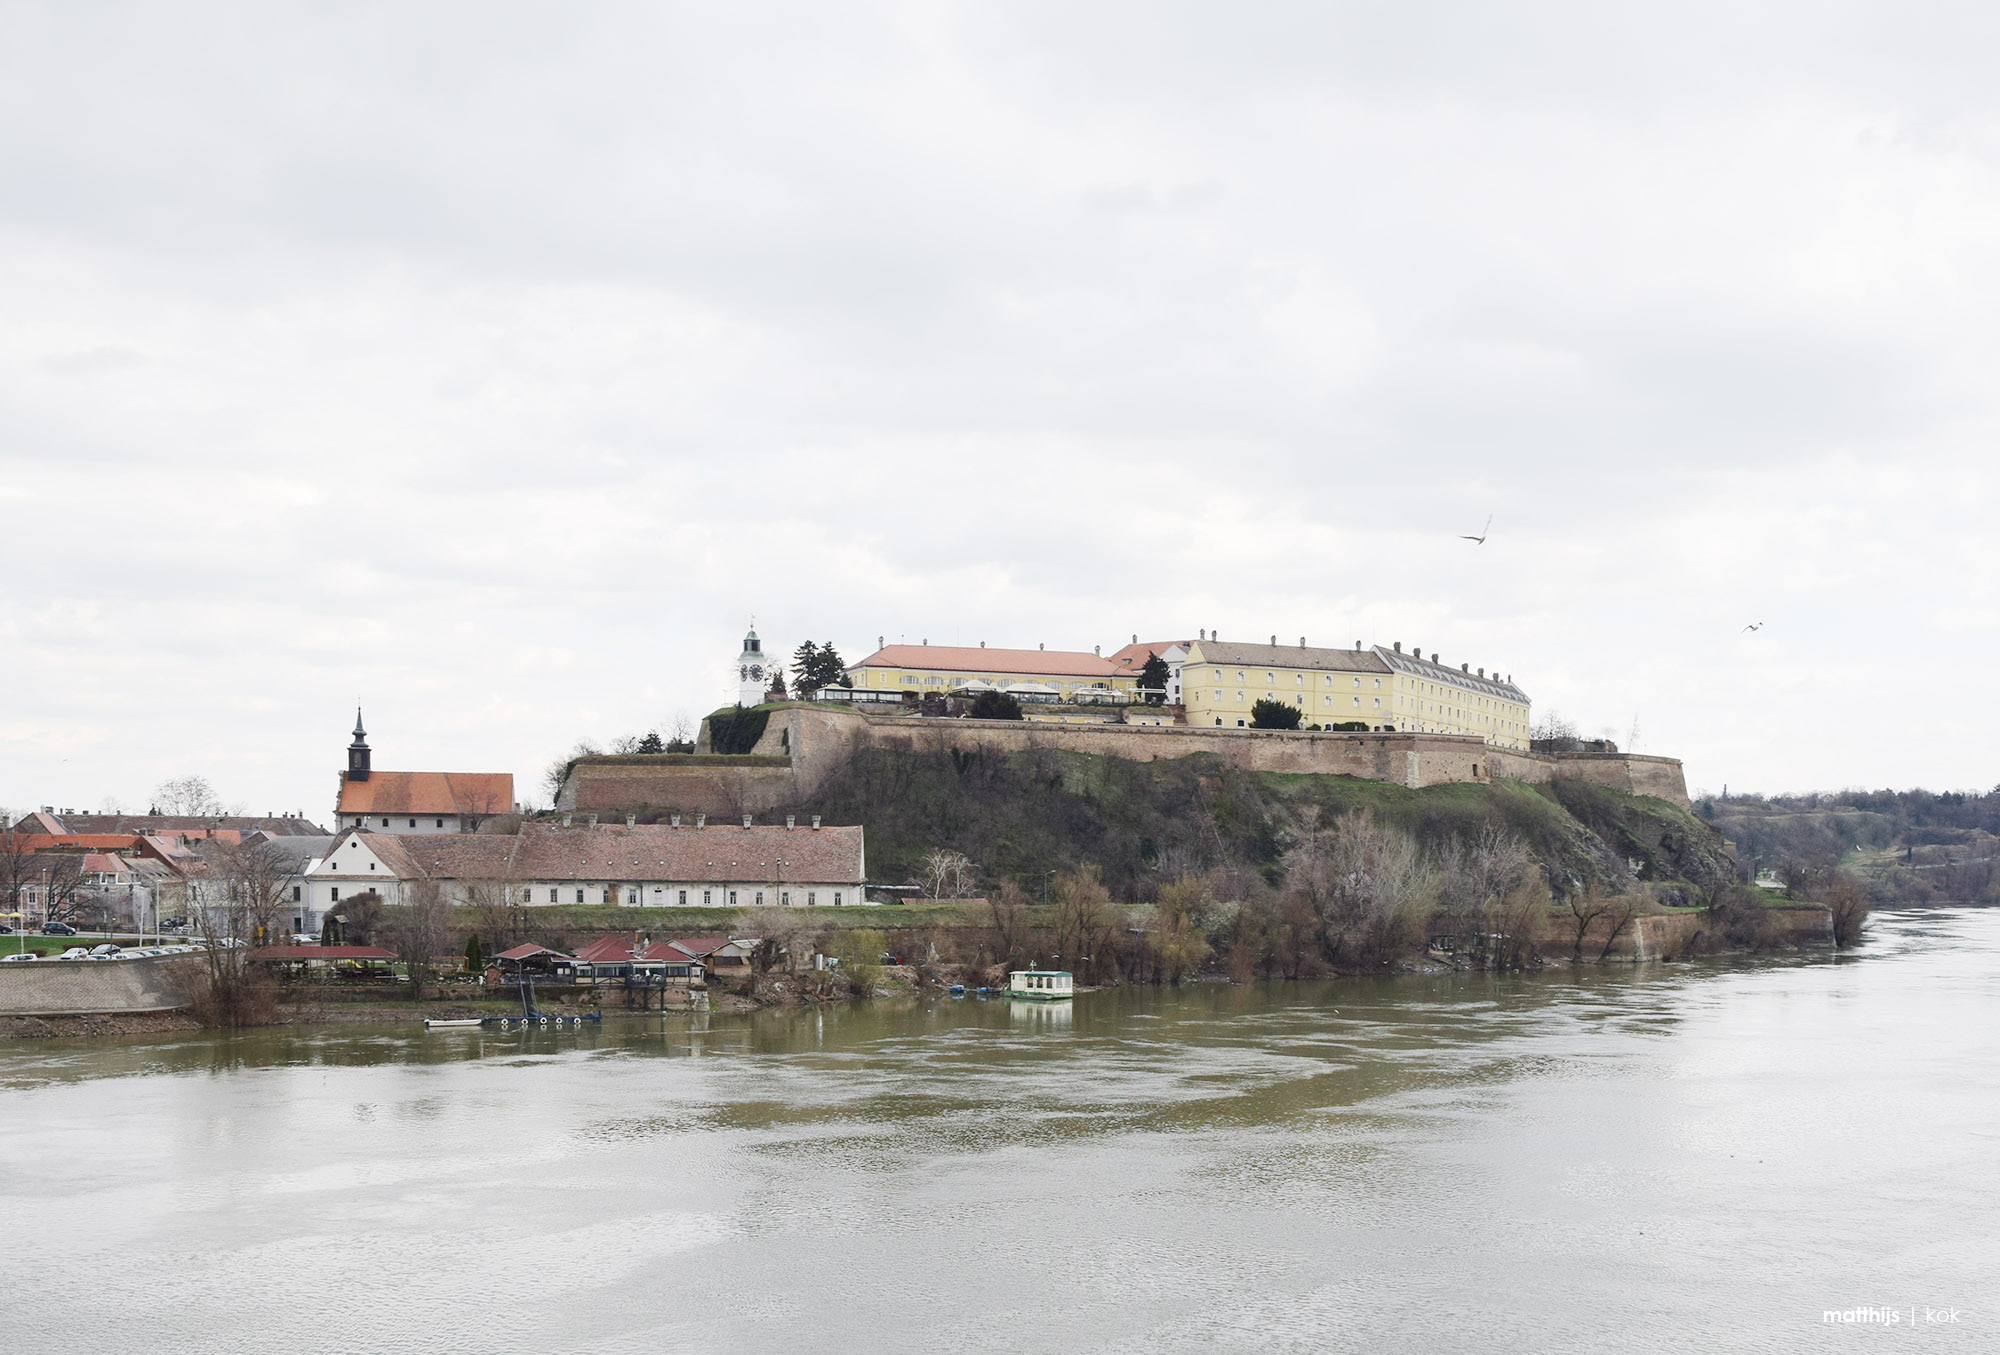 Petrovaradin Fortress, Novi Sad, Serbia | Photo by Matthijs Kok